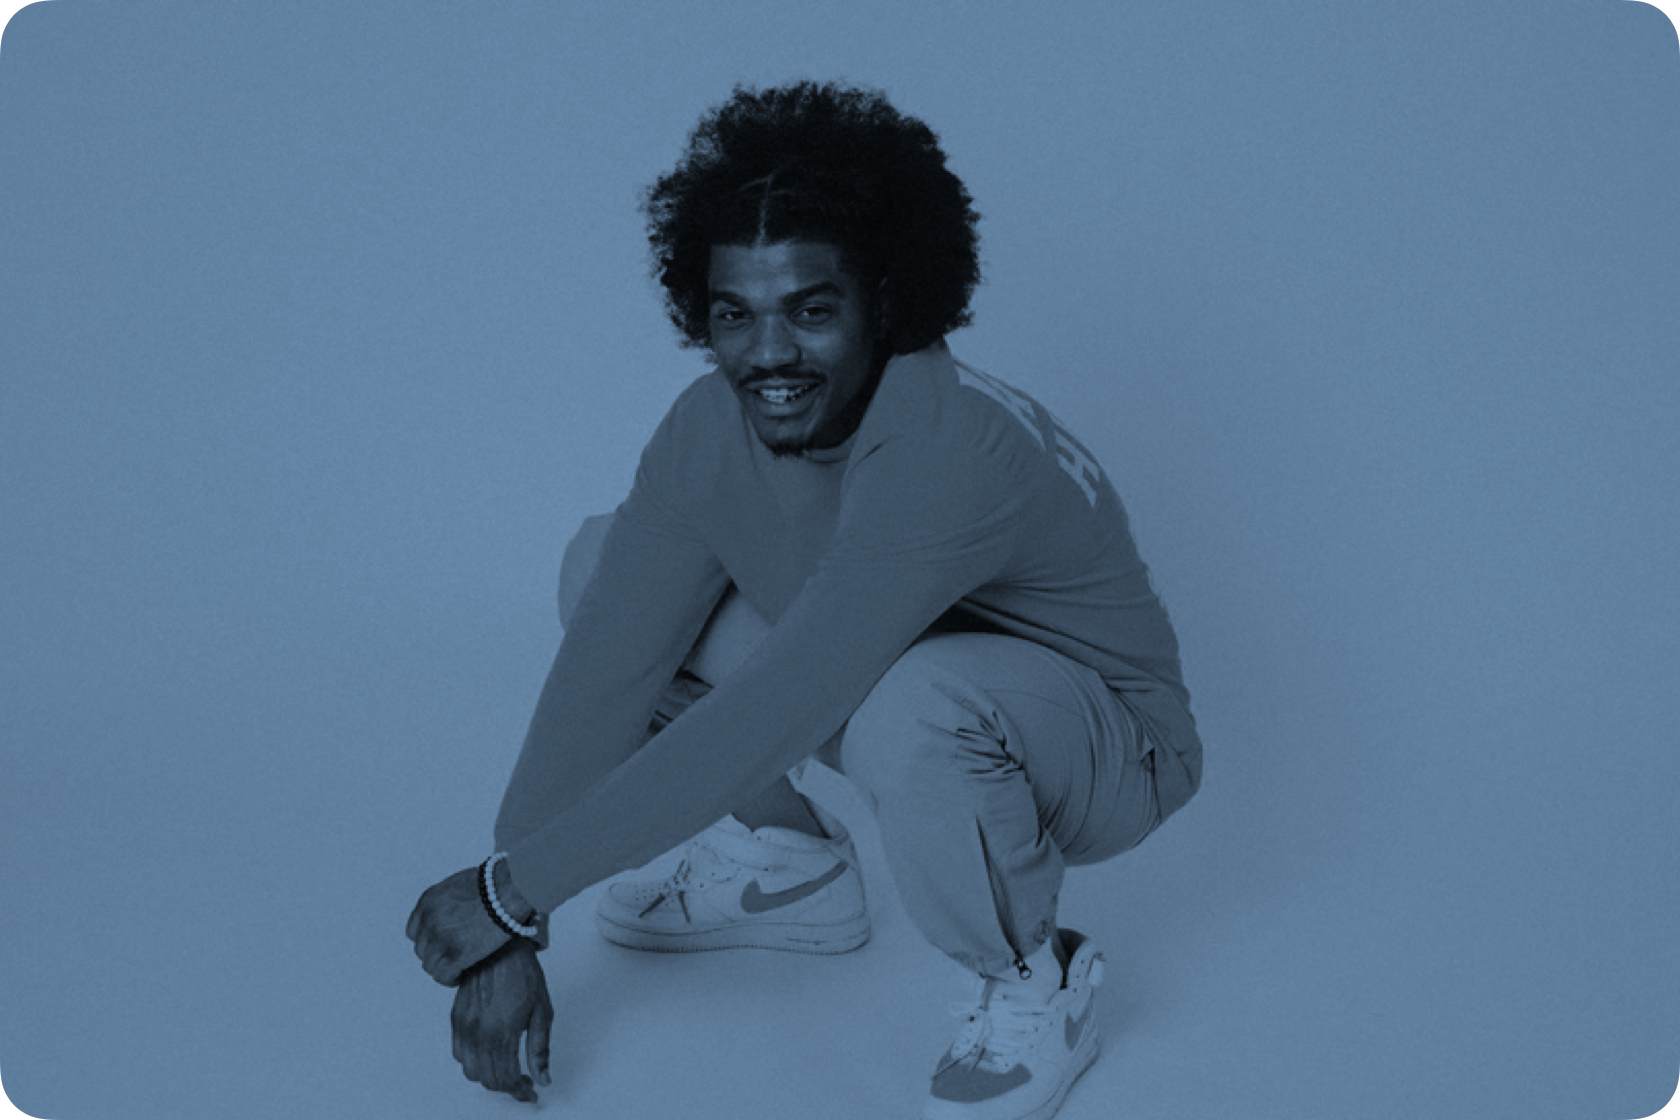 Portrait of Smino crouching